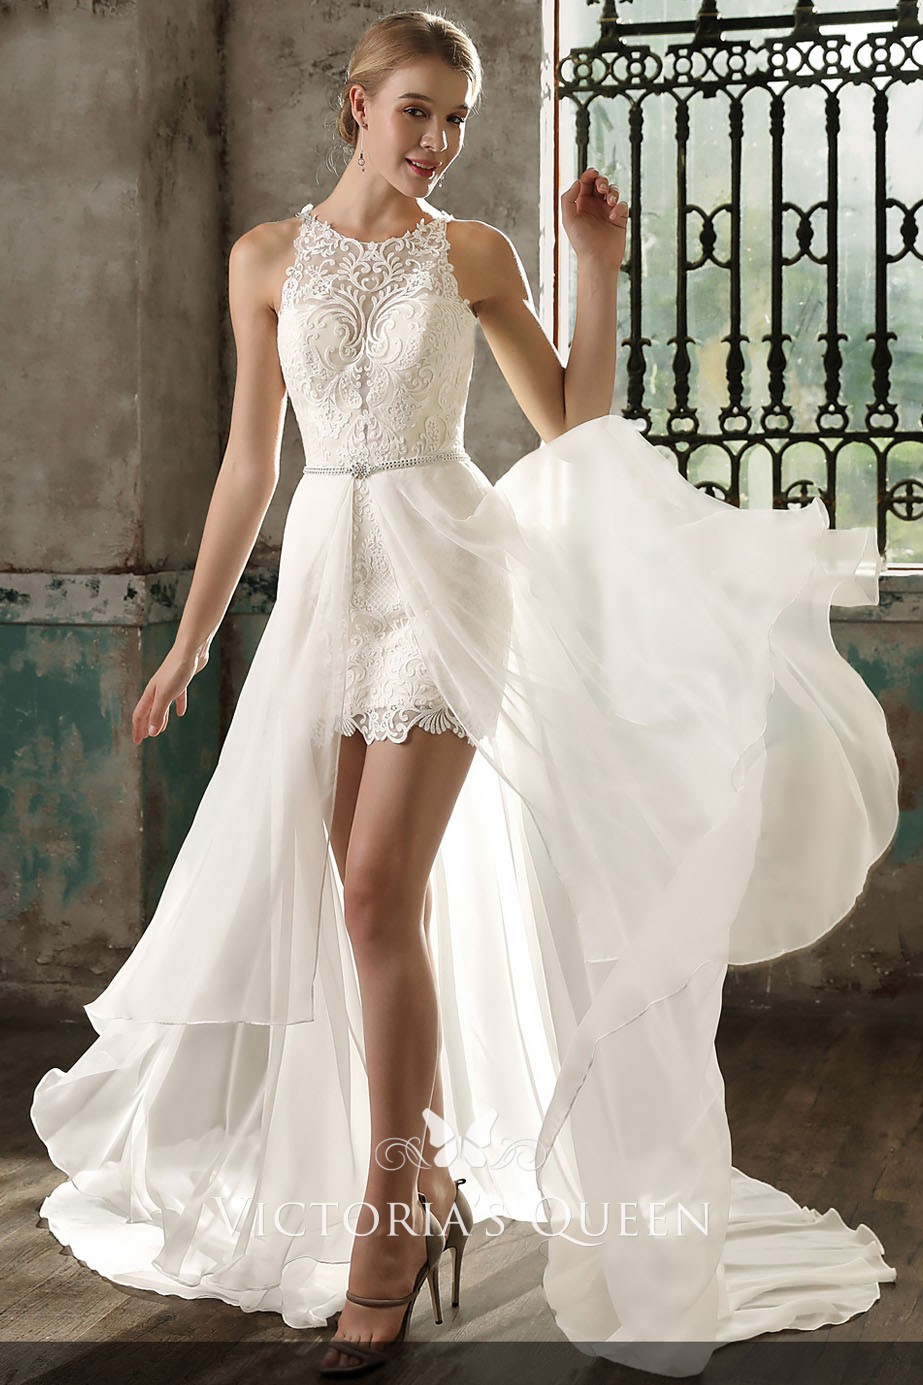 Ivory Lace And Chiffon Overskirt Short Wedding Dress